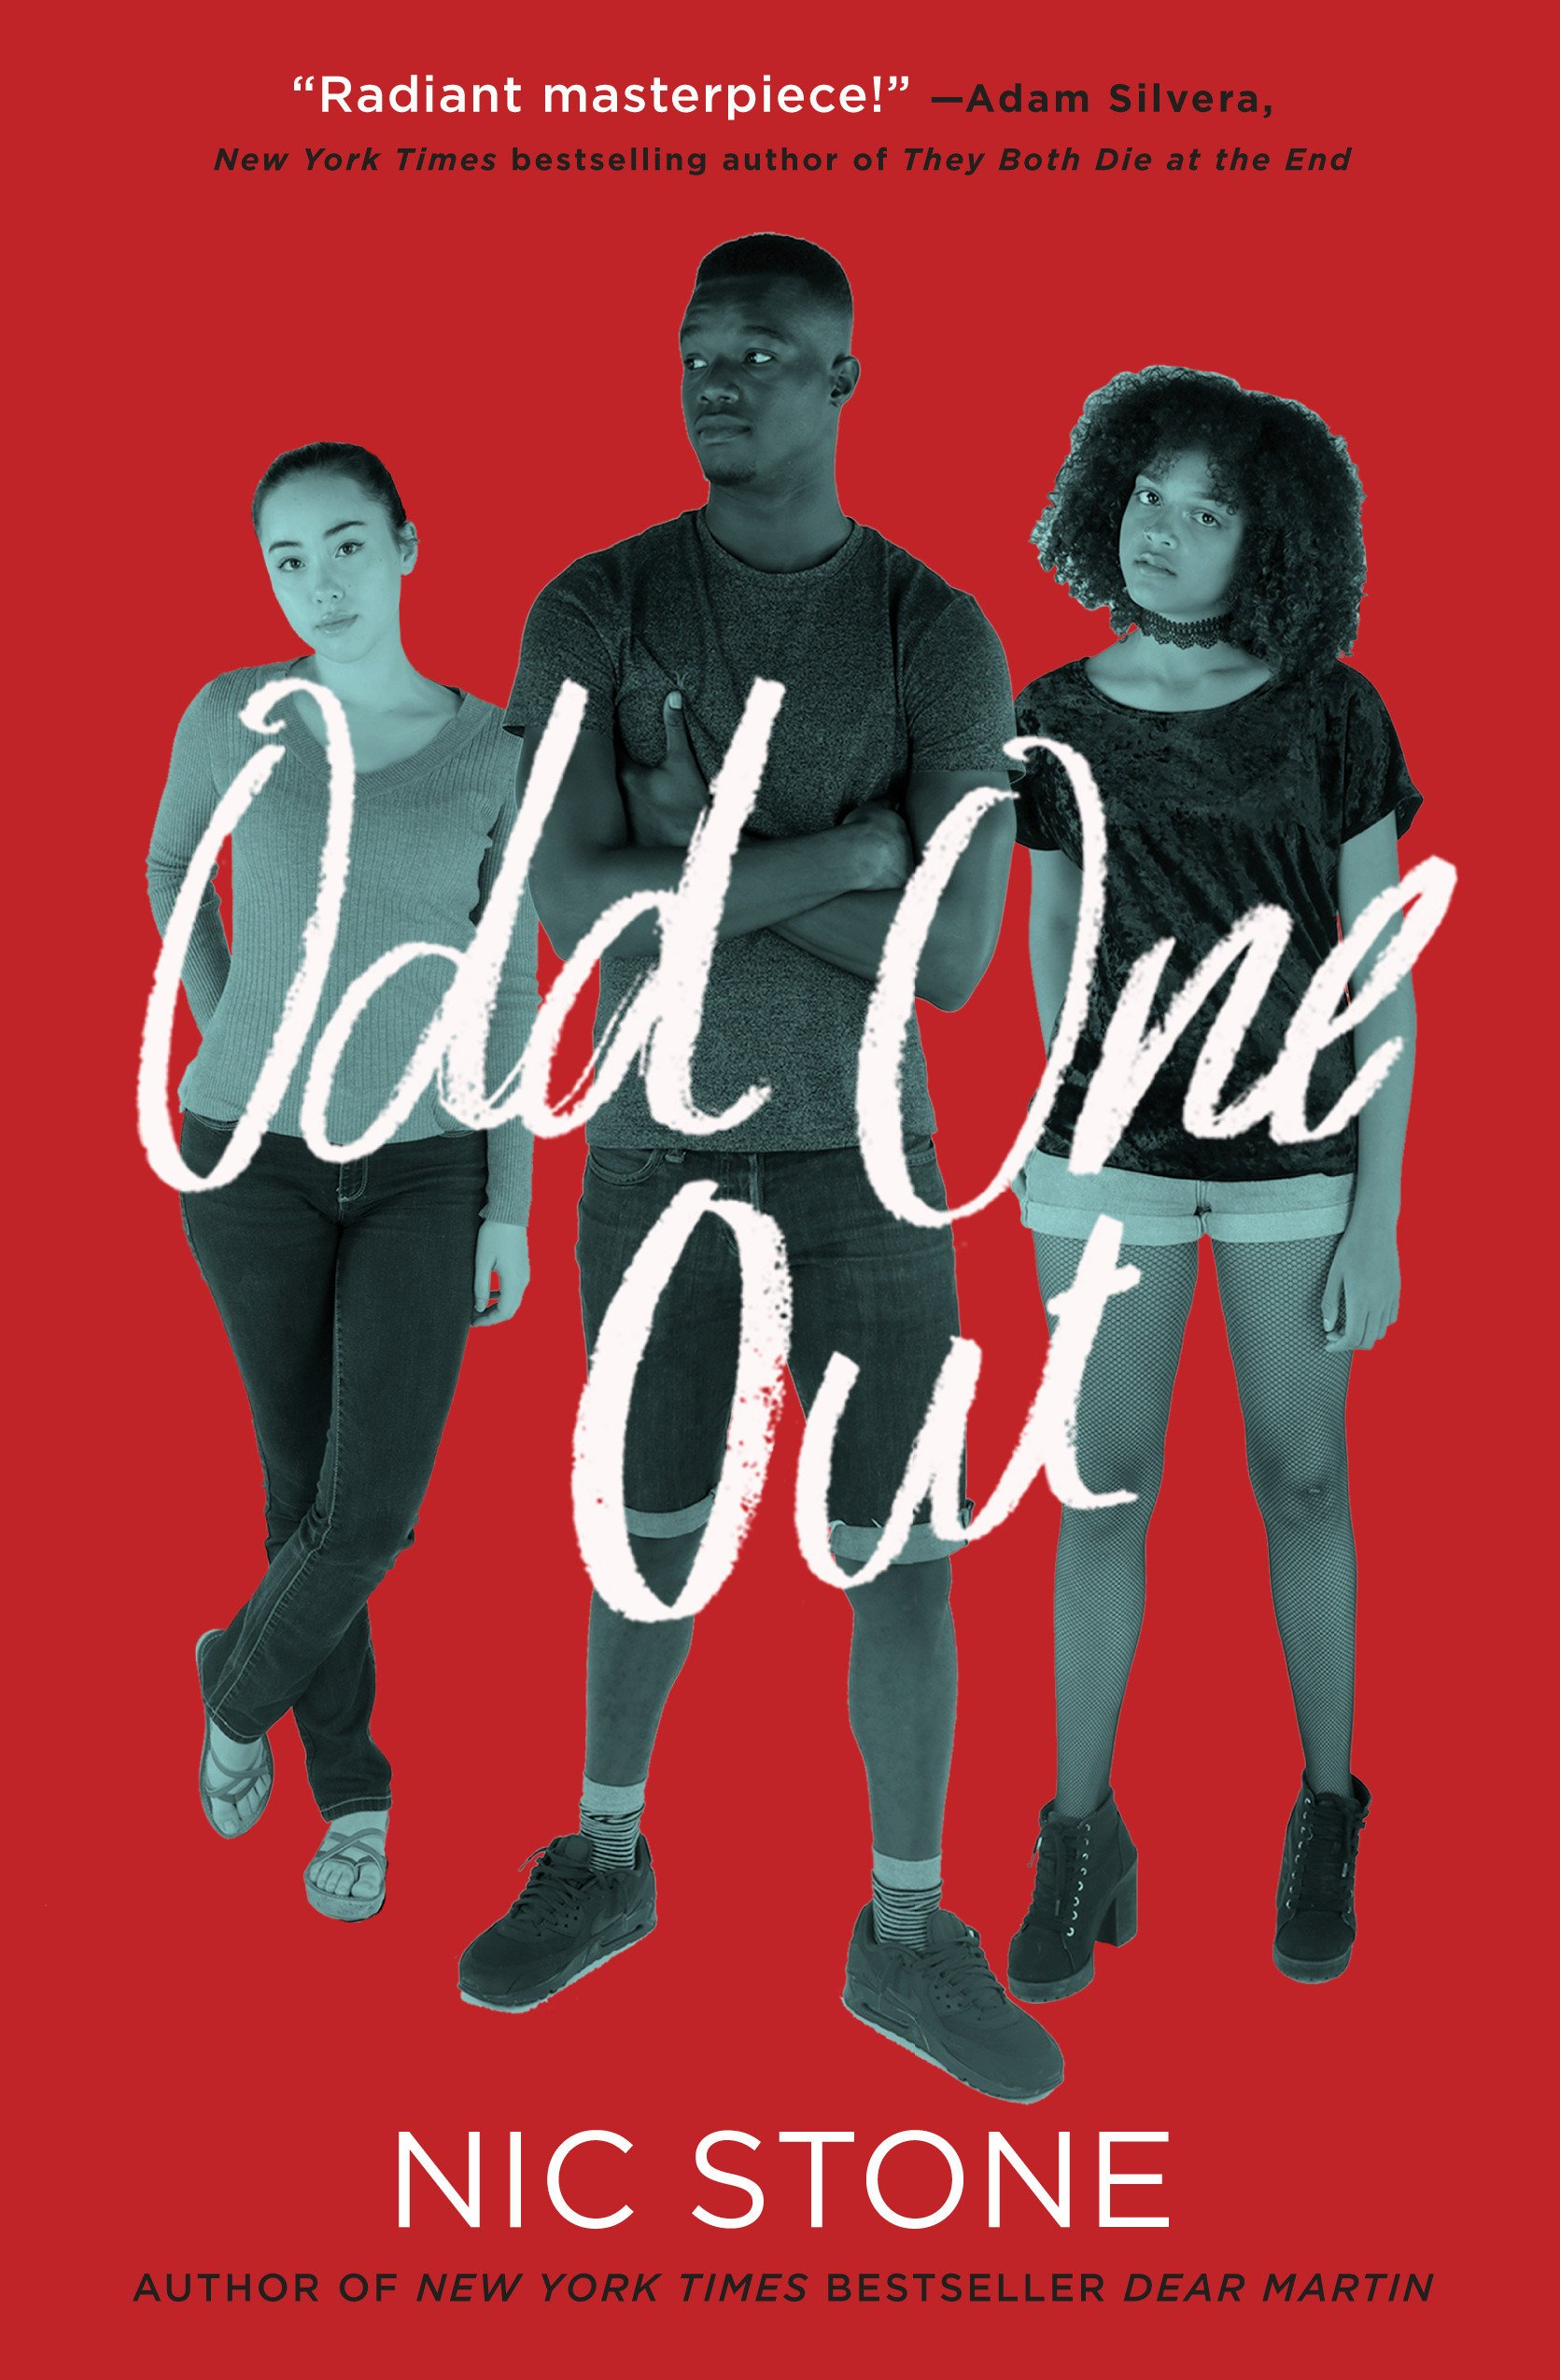 Odd One Out: Amazon.co.uk: Nic Stone: Books